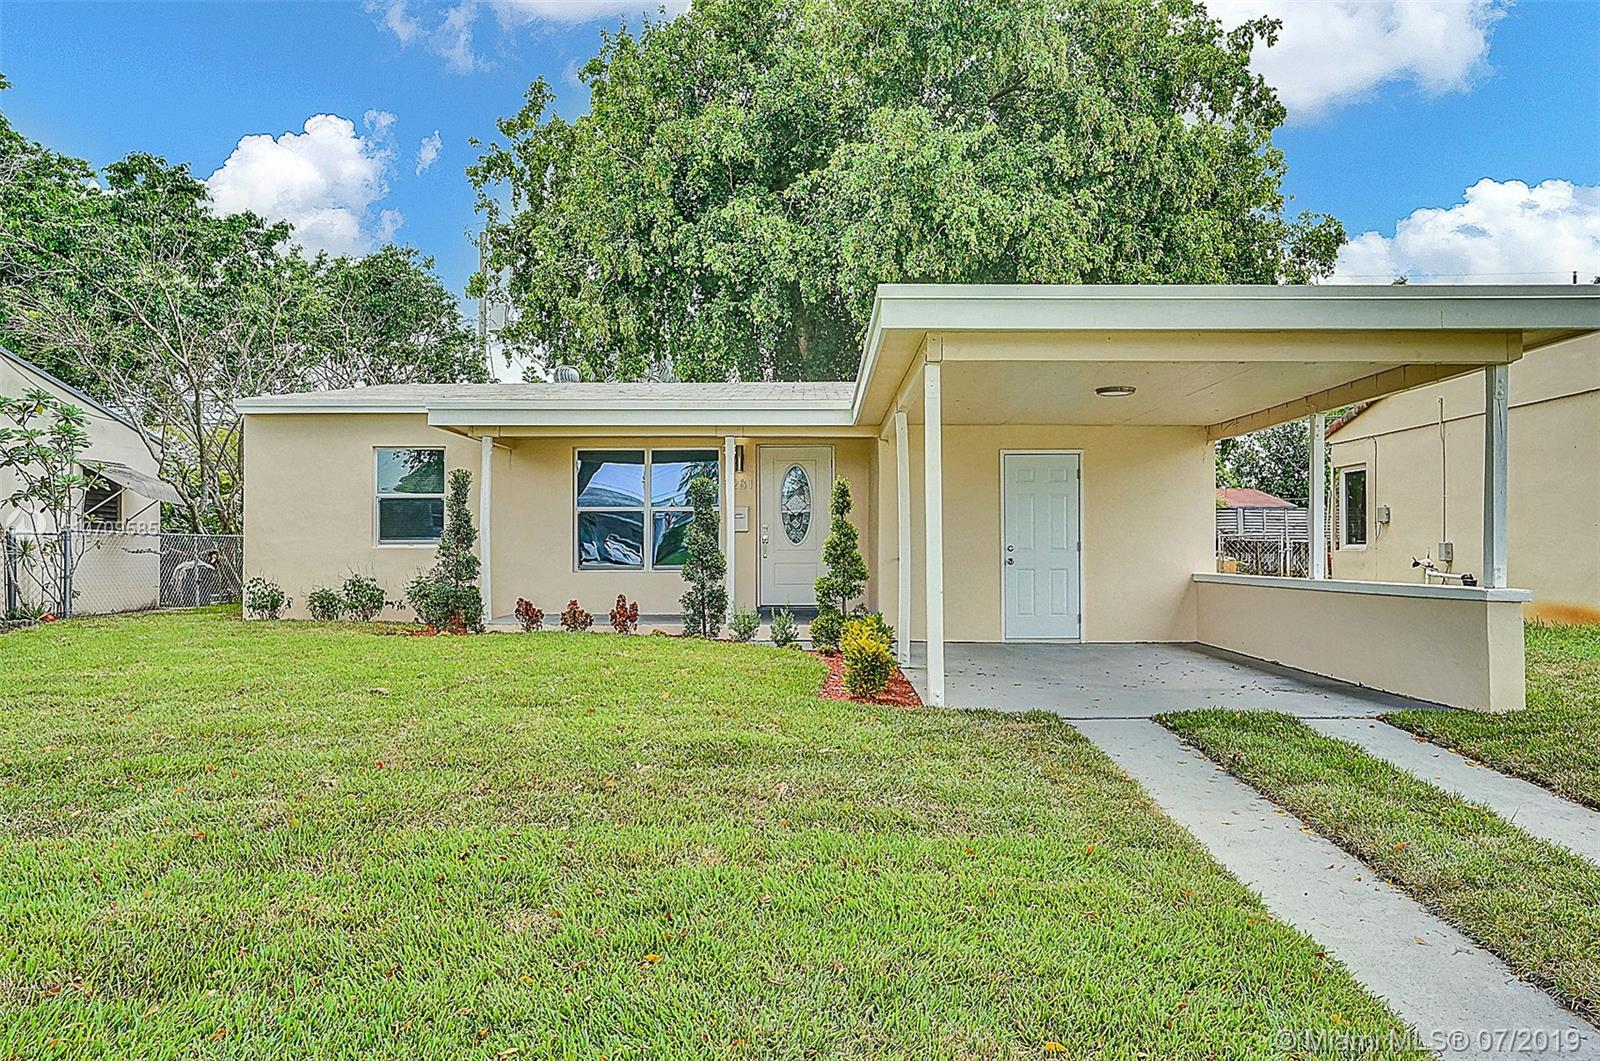 Beautifully remodeled 3/2 home in the heart of Oakland Park! Perfect turn-key starter home or vacation rental opportunity! NEW hurricane impact windows/doors, NEW 2019 Goodman A/C unit, & newer 2017 Shingle roof! Custom Kitchen, bathrooms, floors, and recessed lighting throughout. Kitchen features quartz counter-tops and brand new Whirlpool s/s appliances + Samsung washer/dryer set! Freshly painted inside/out! New irrigation system +sod/landscaping in the front and backyard, along with a large shed for storage! Minutes away from the beach, shopping plazas, etc. Hurry this home wont last long!